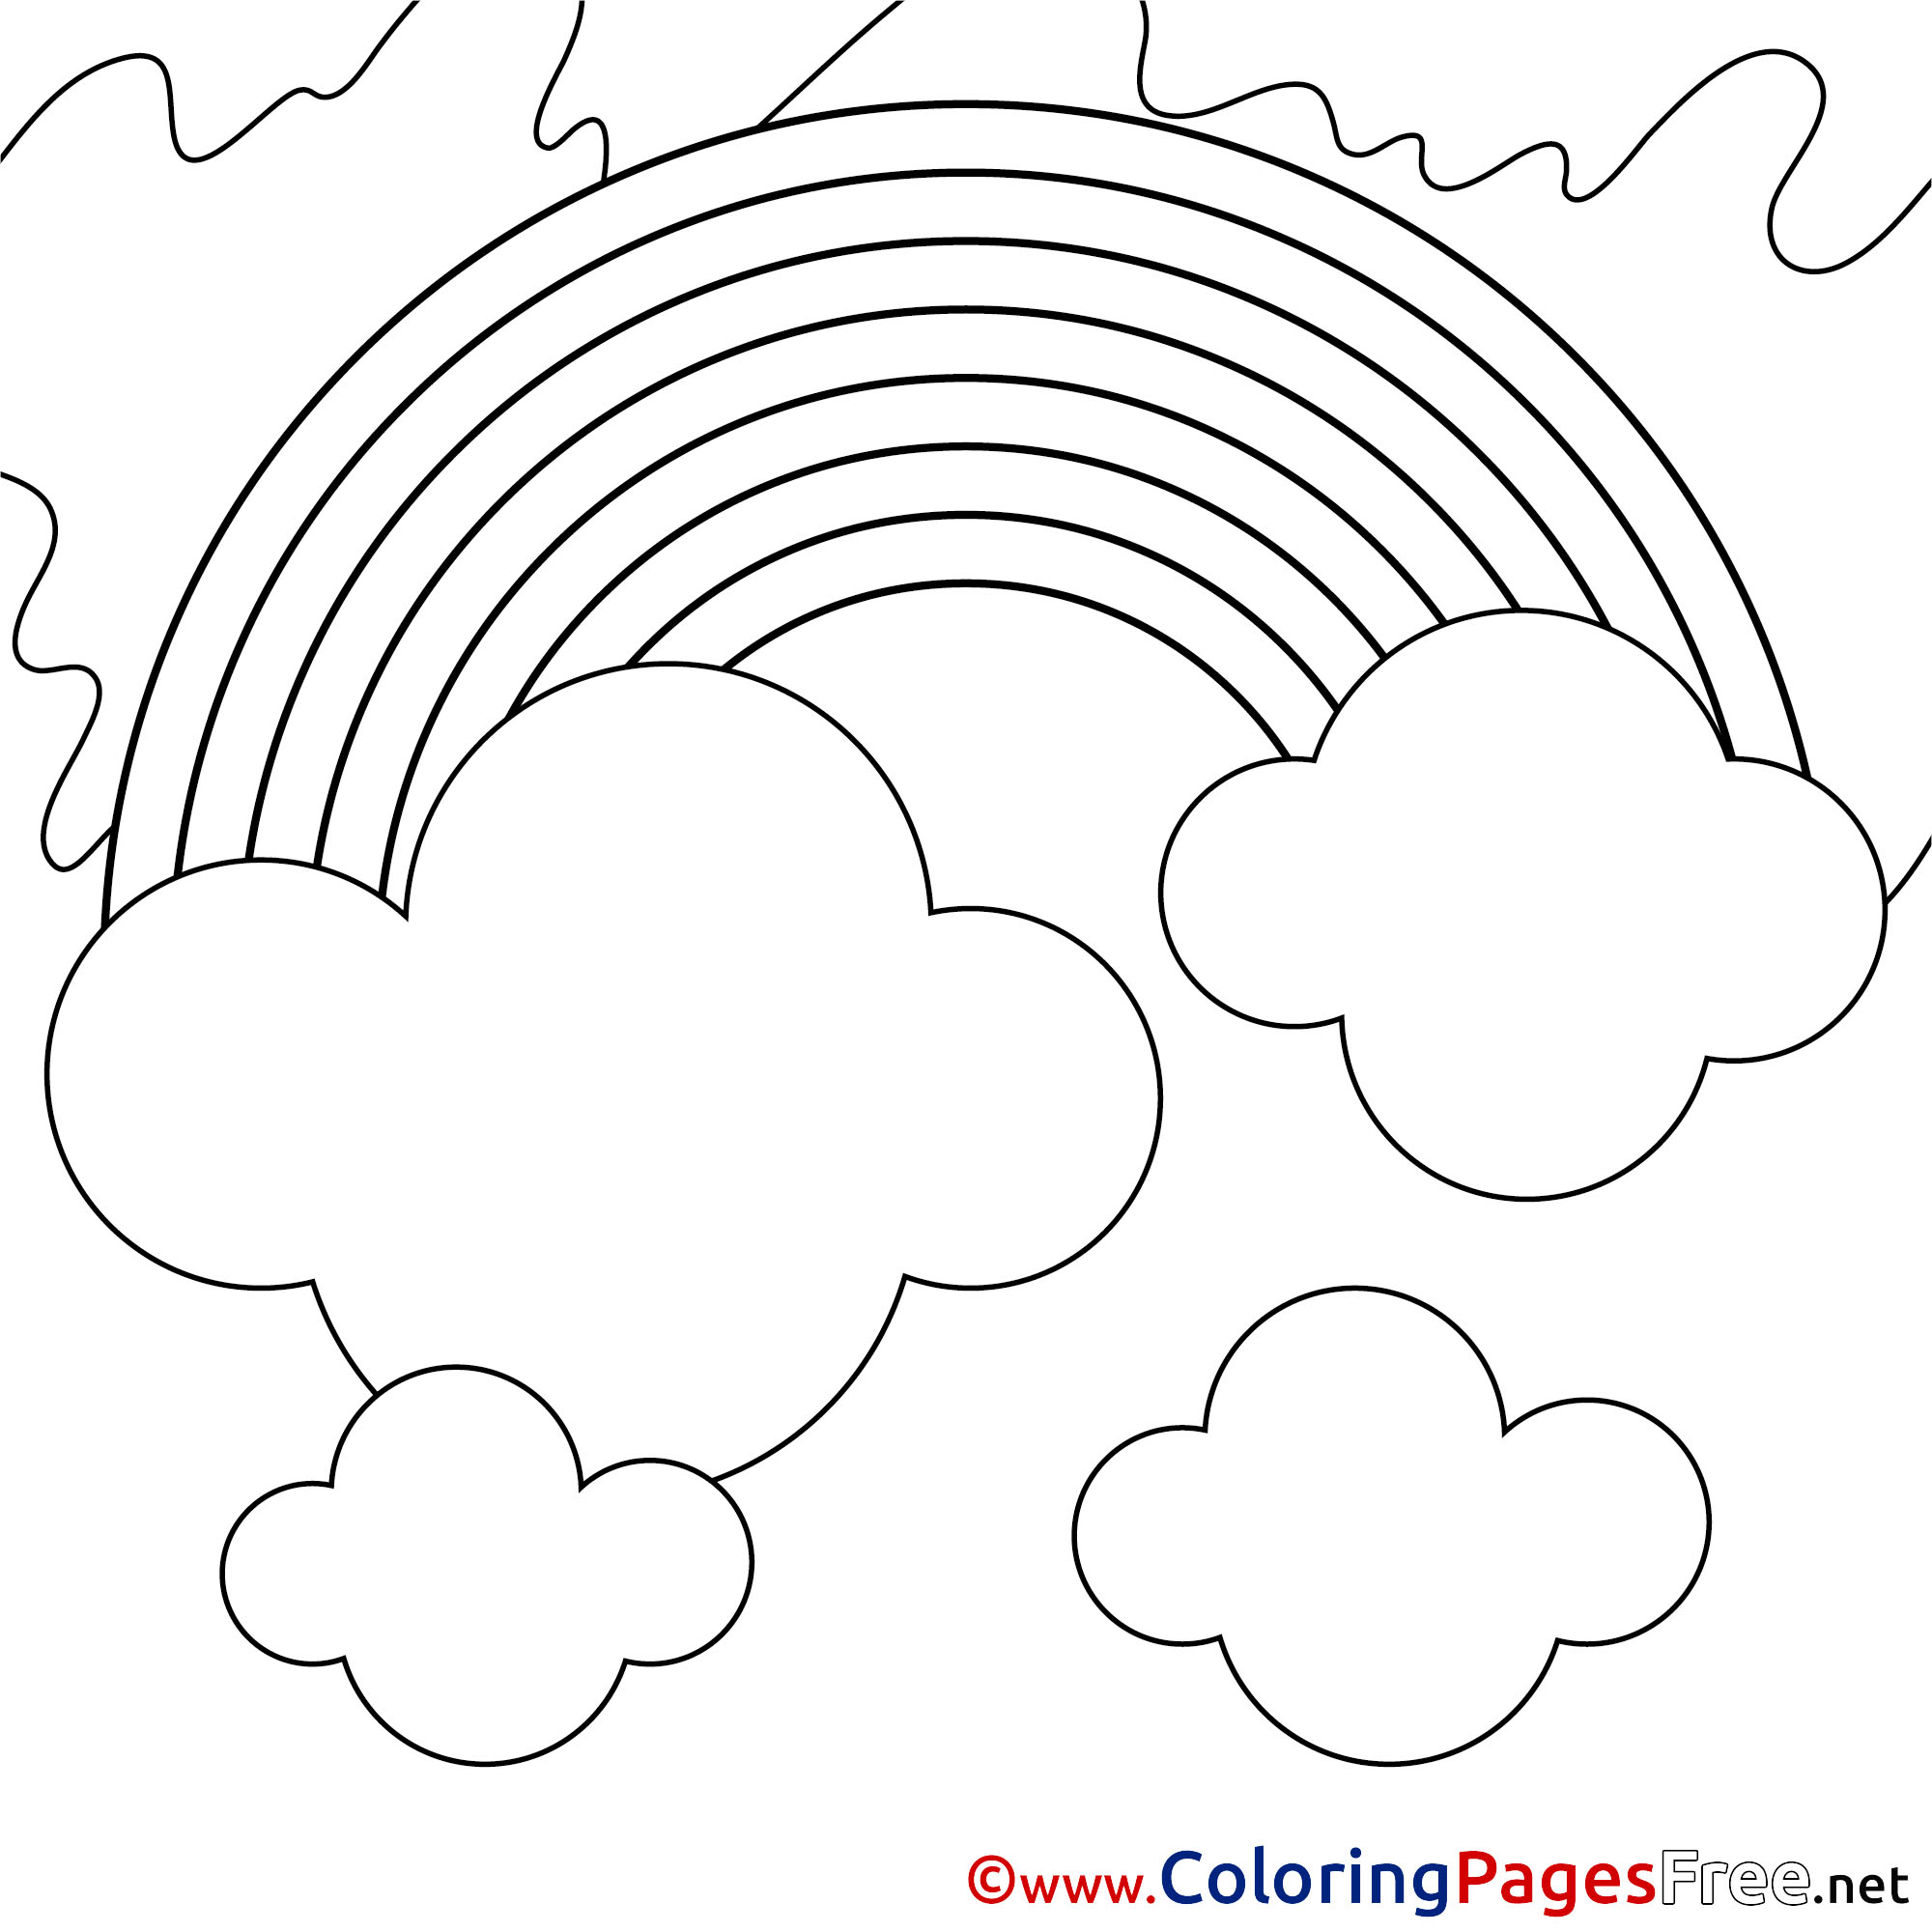 Rainbow Summer Colouring Sheet Free Clouds